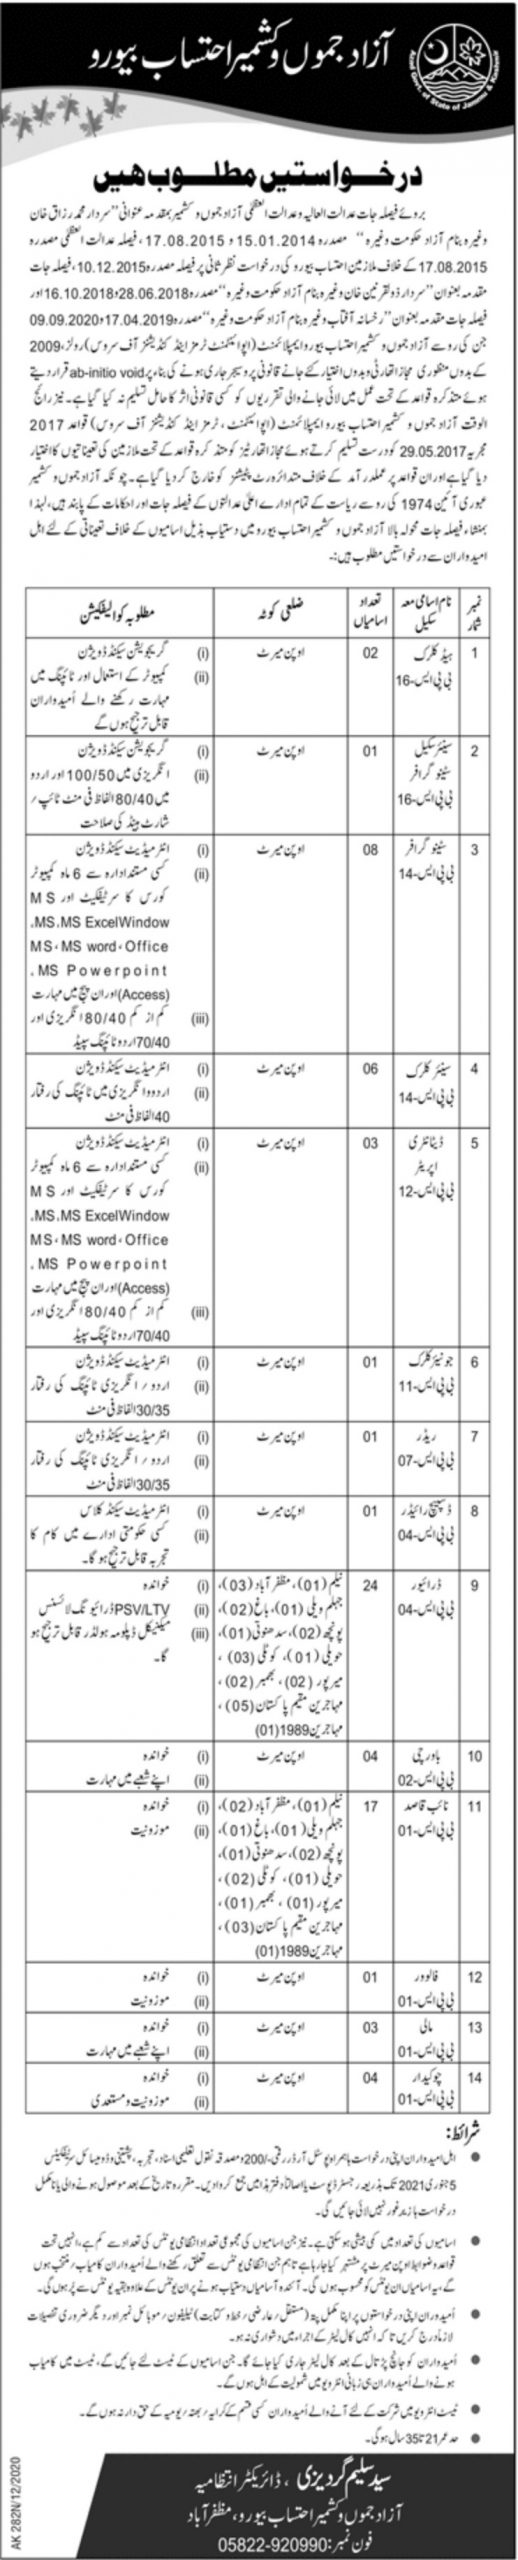 AJK Accountability Bureau Jobs December 2020